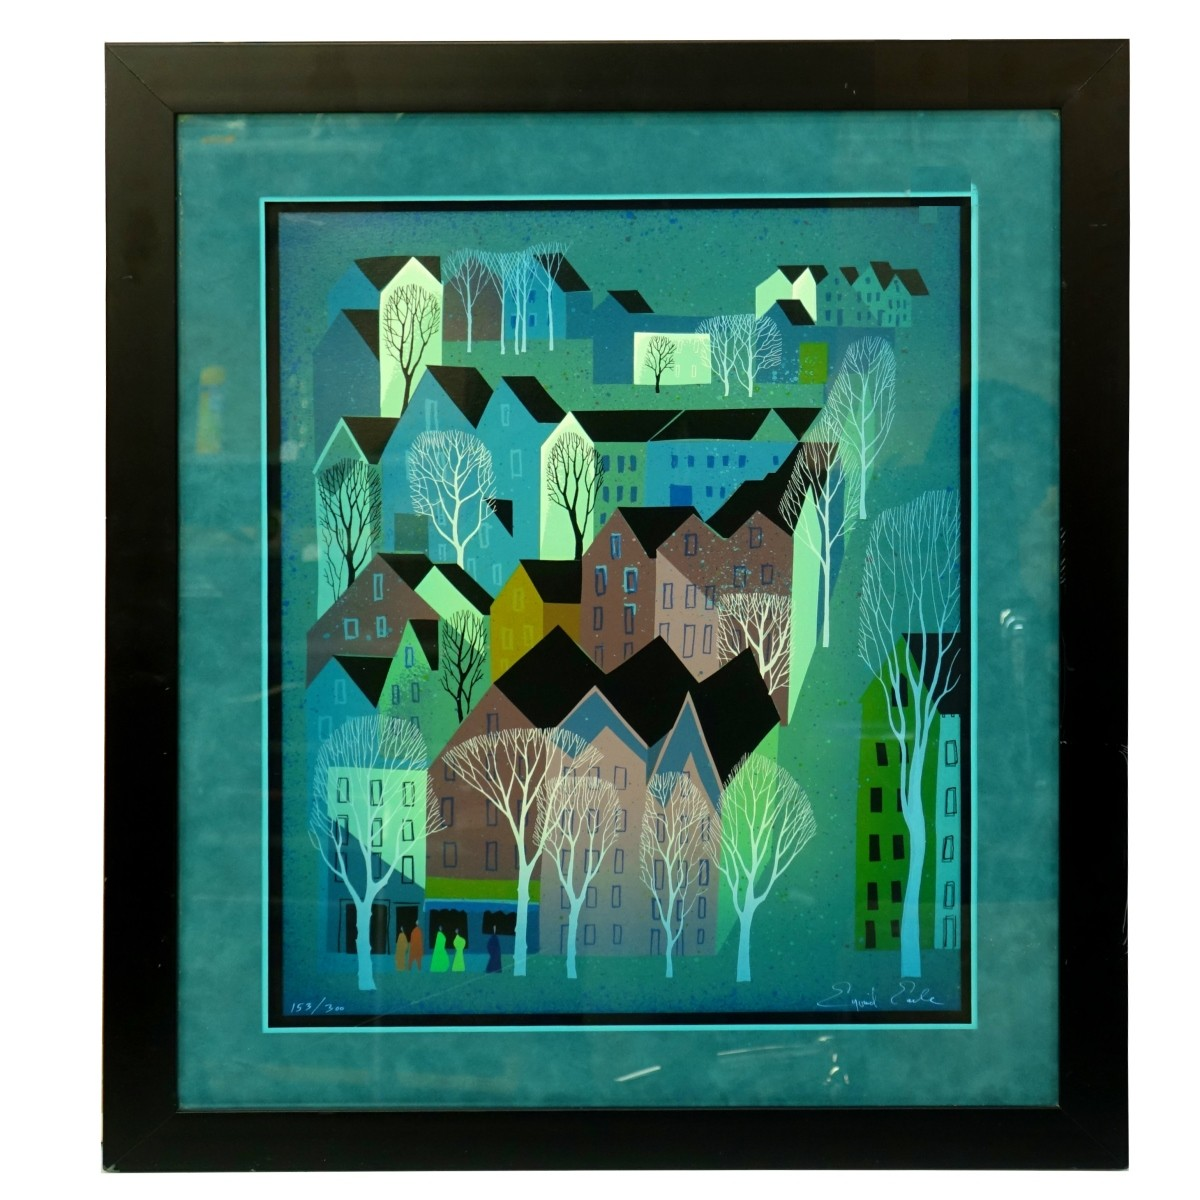 Eyvind Earle (1916-2000) Lithograph